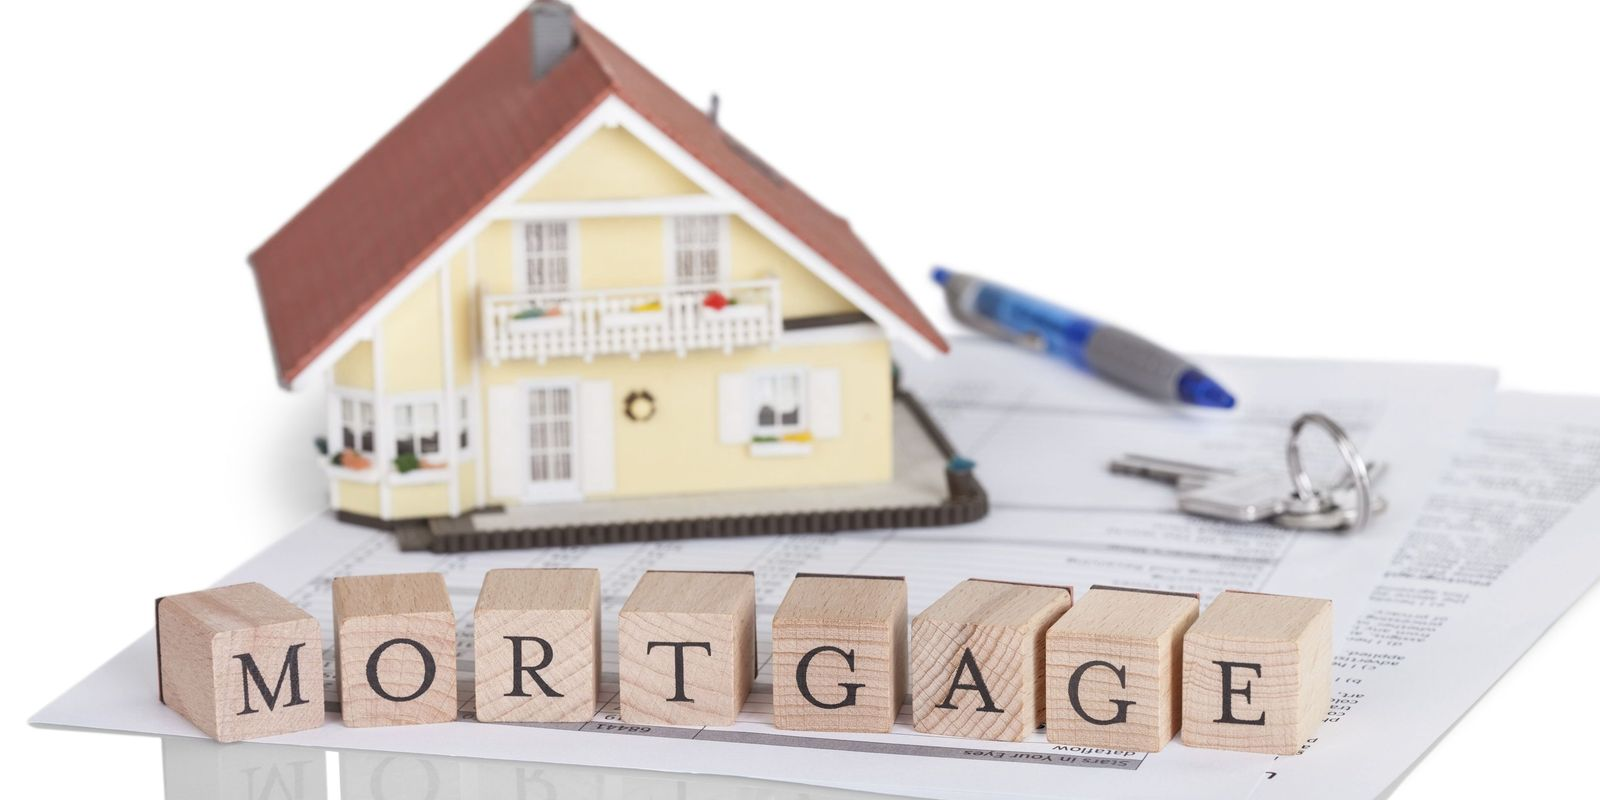 30 year amortization wins attention on mortgage market